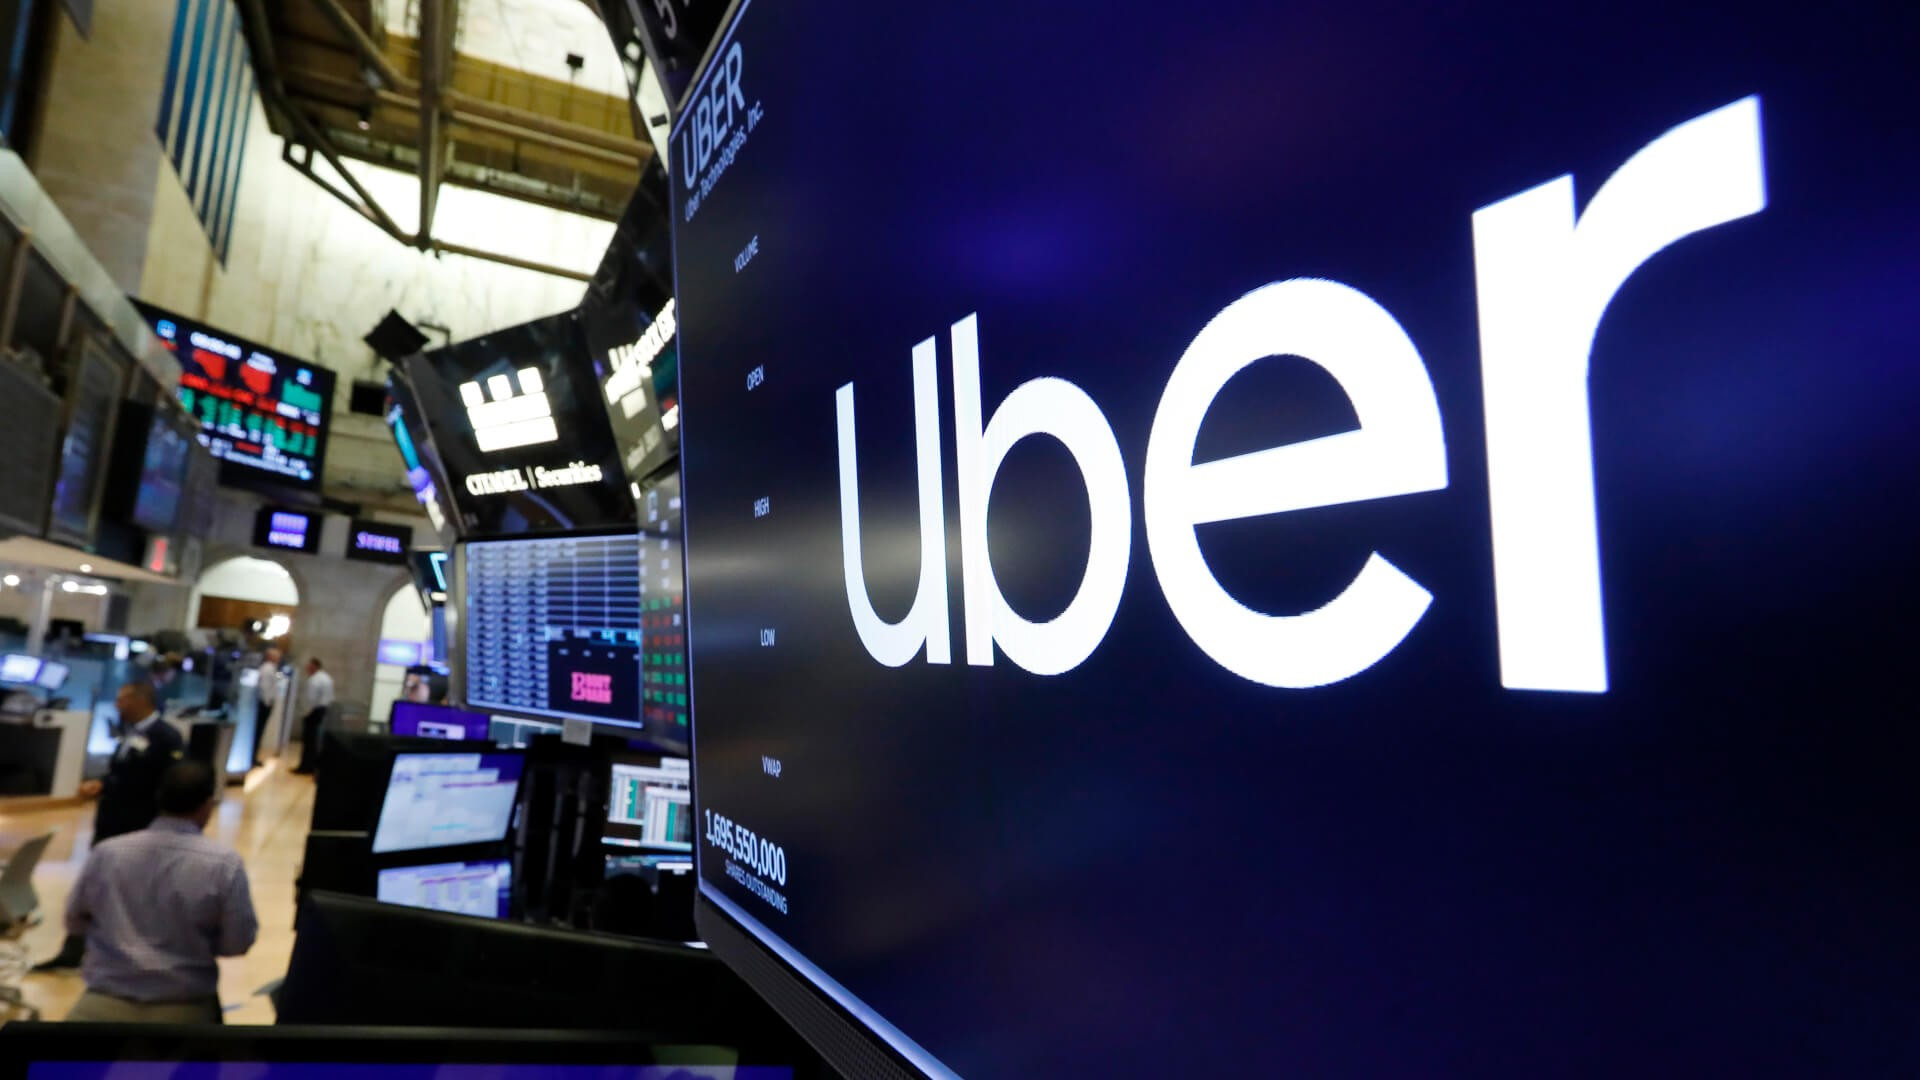 UBER IPO stock hype in 2019